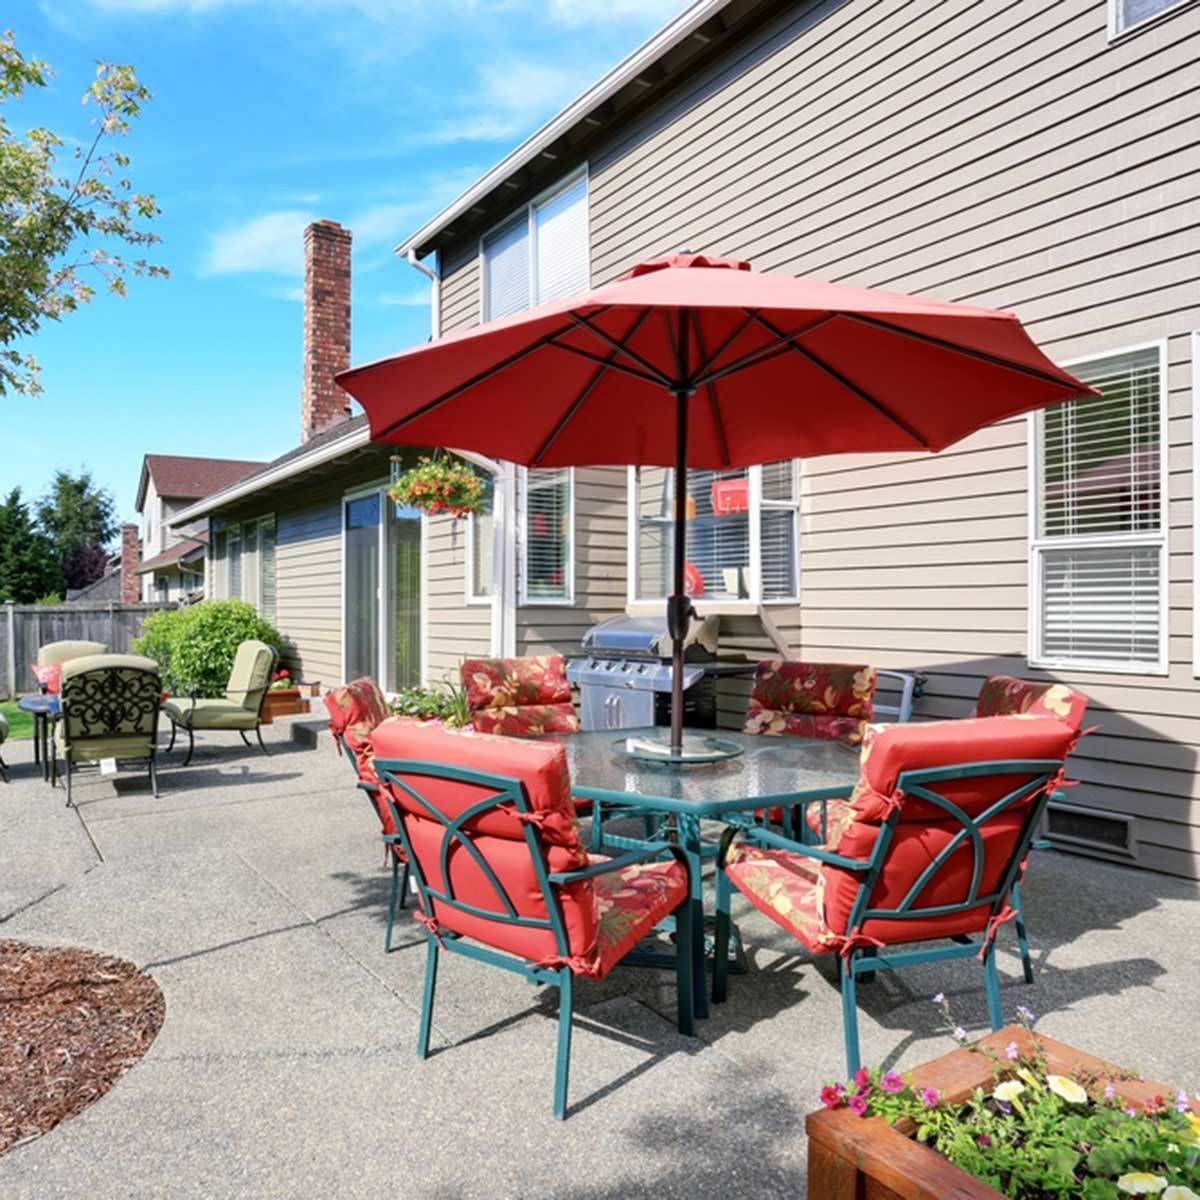 Use Table Umbrellas For Roomy, Level Patios